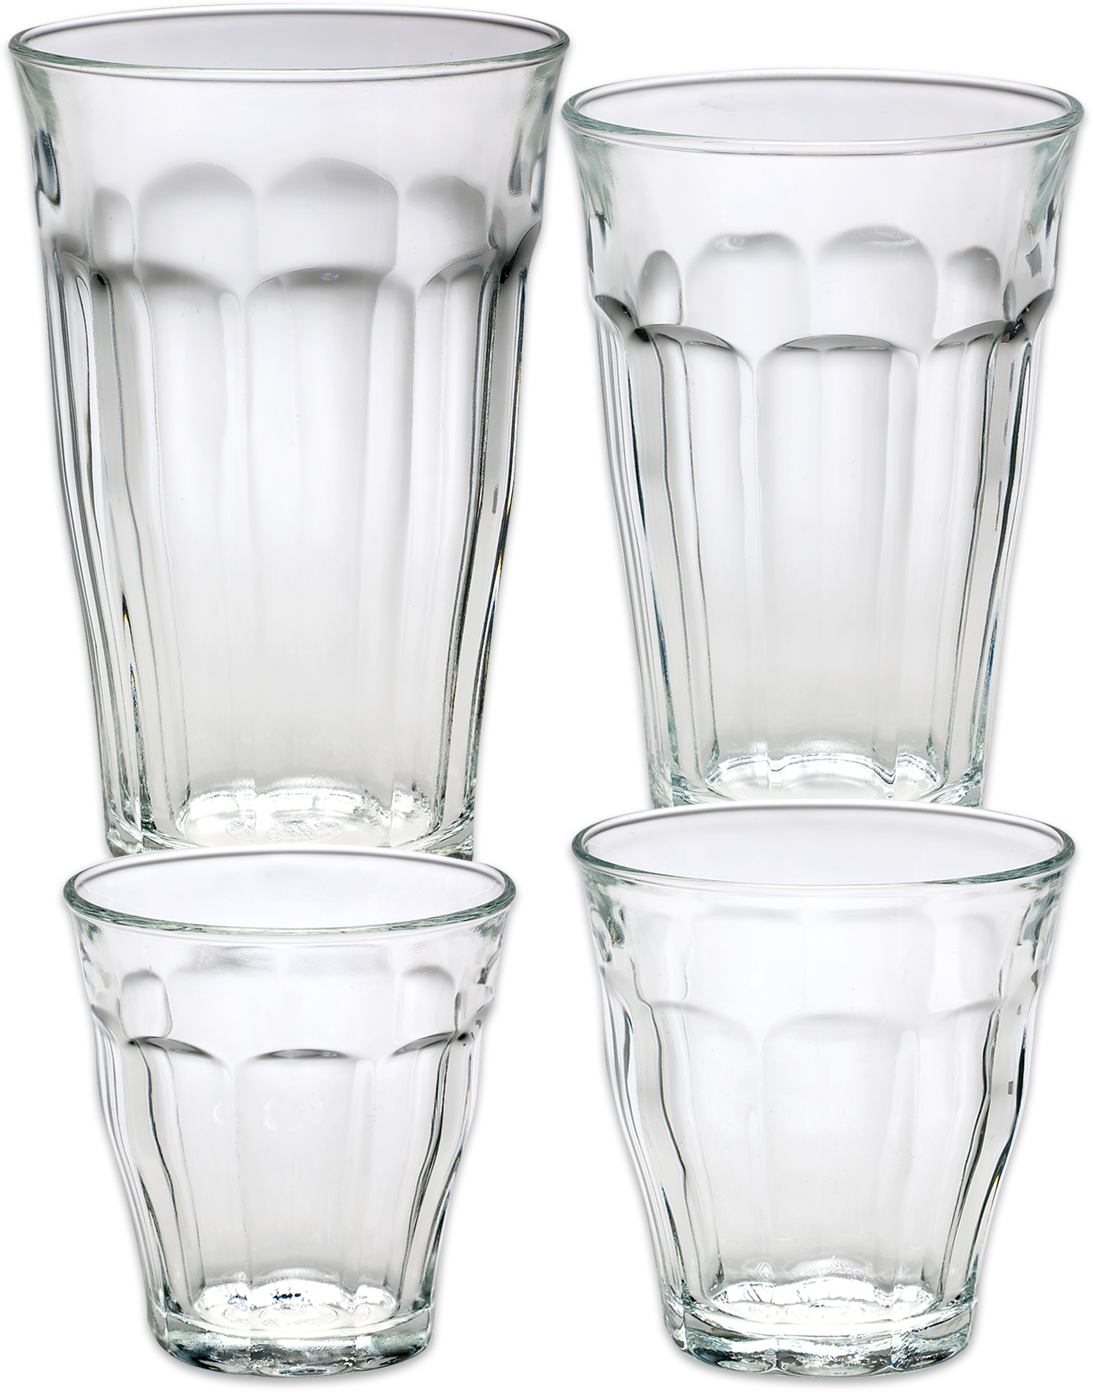 French Glass Tumblers In 4 Sizes, Set Of 6 | Glass, Tumbler ...